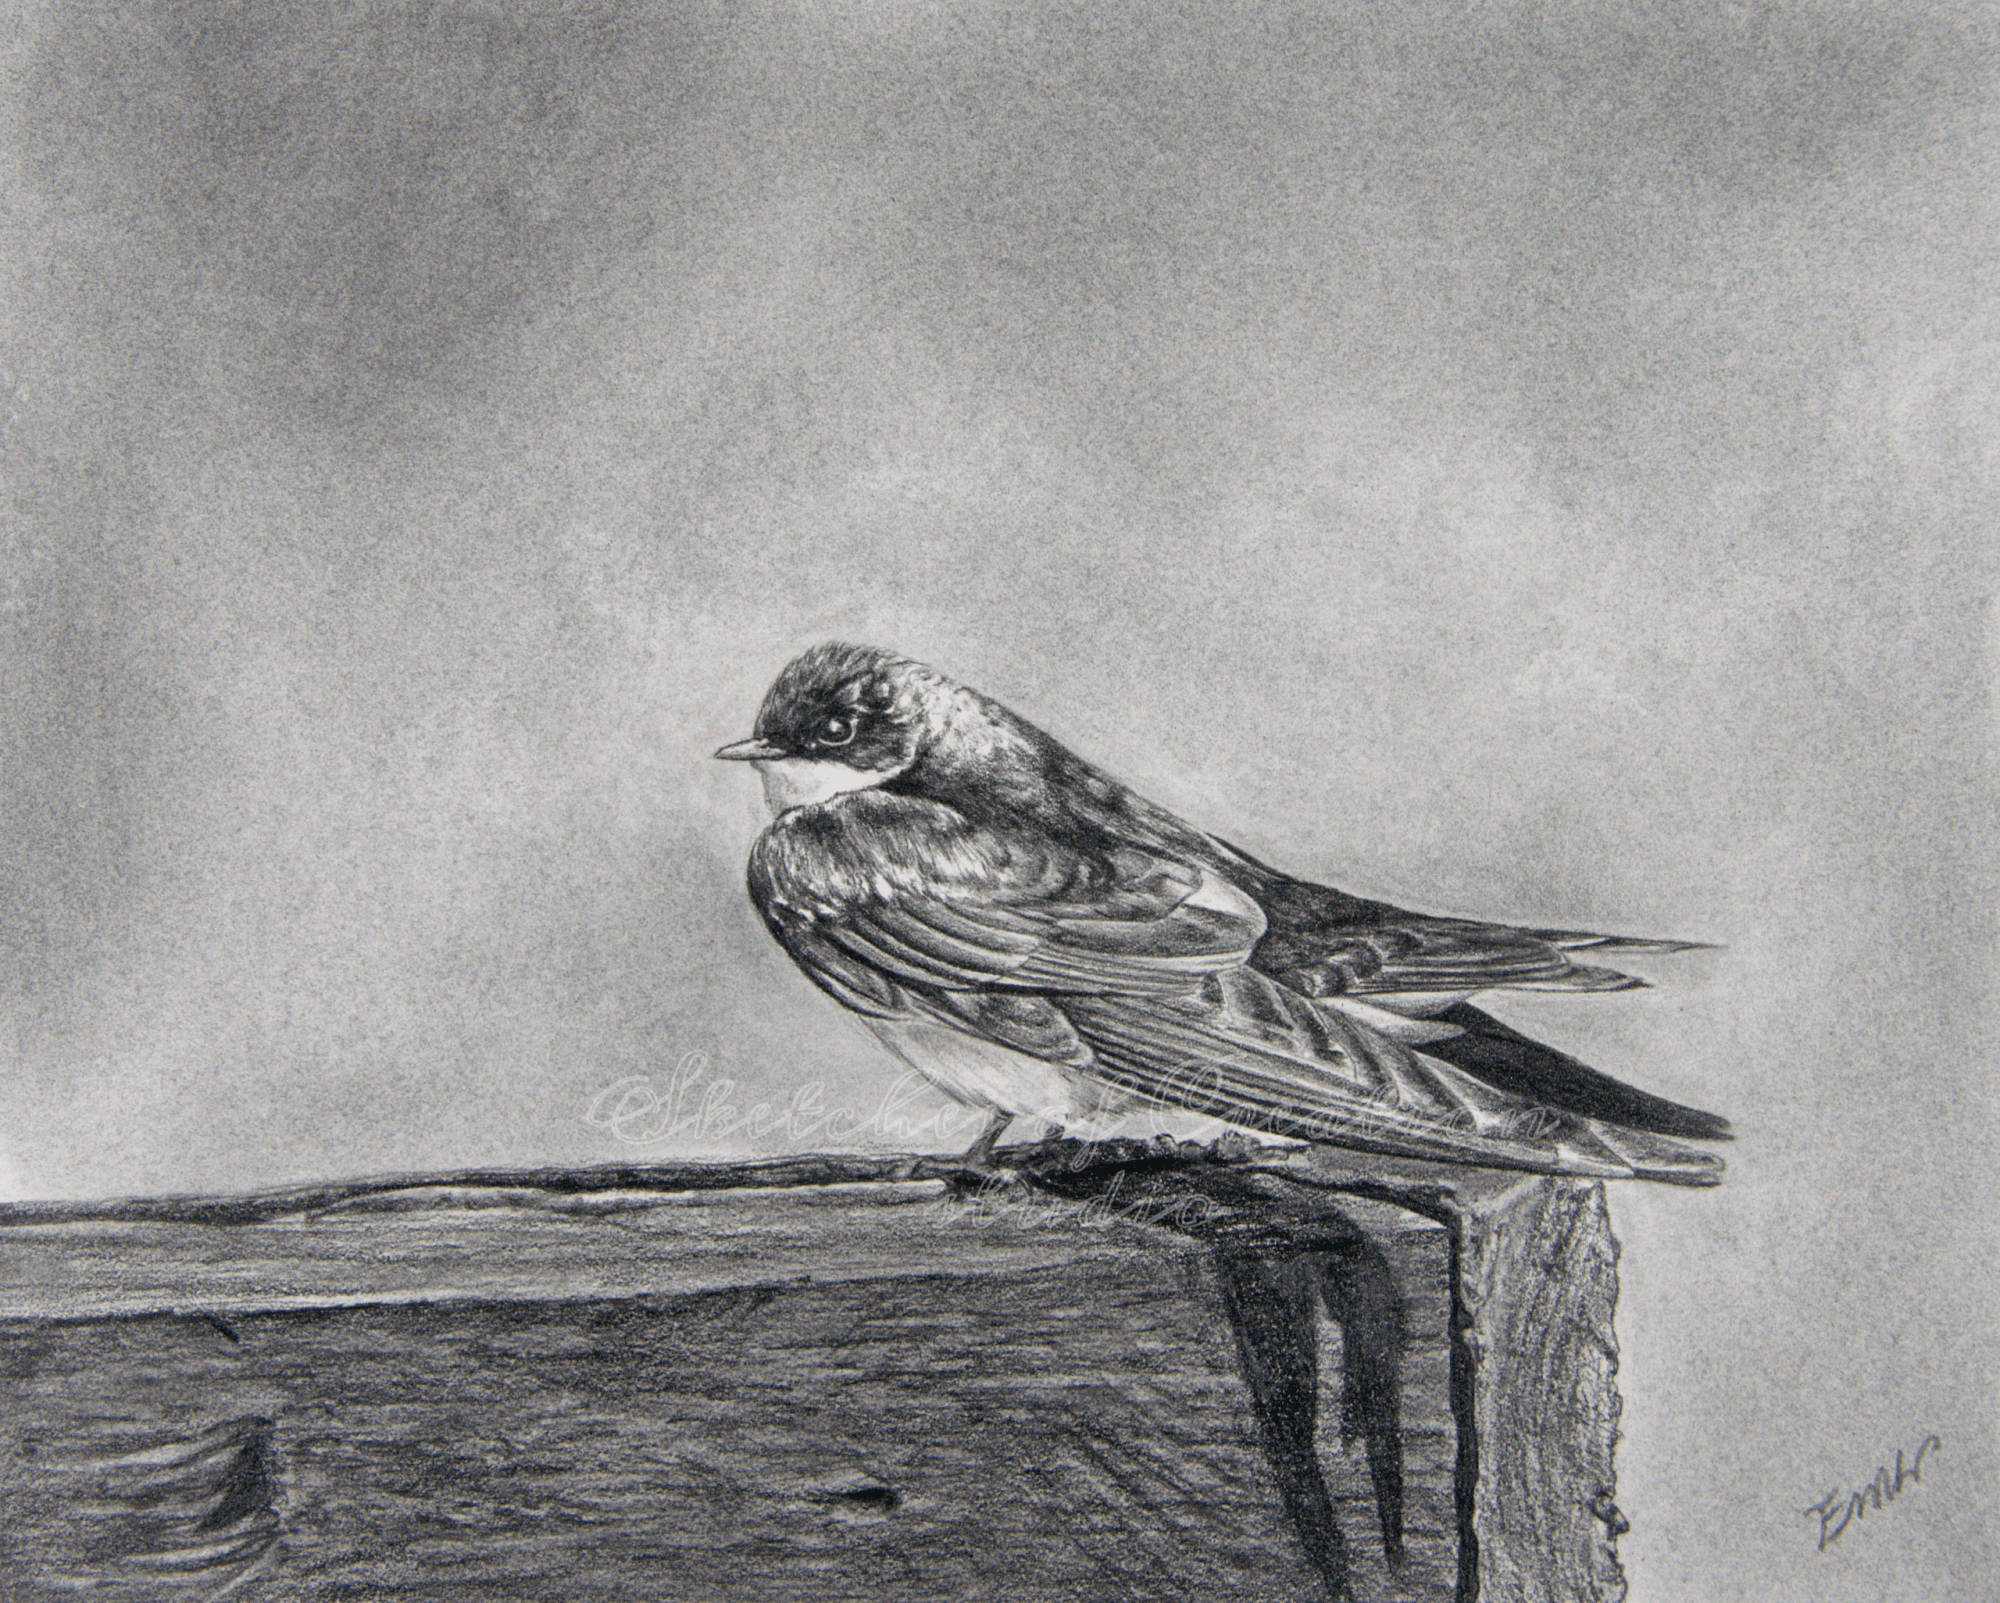 'Tree Swallow' a drawing of a tree swallow on a fence. 8x10 inches. Completed February 2020